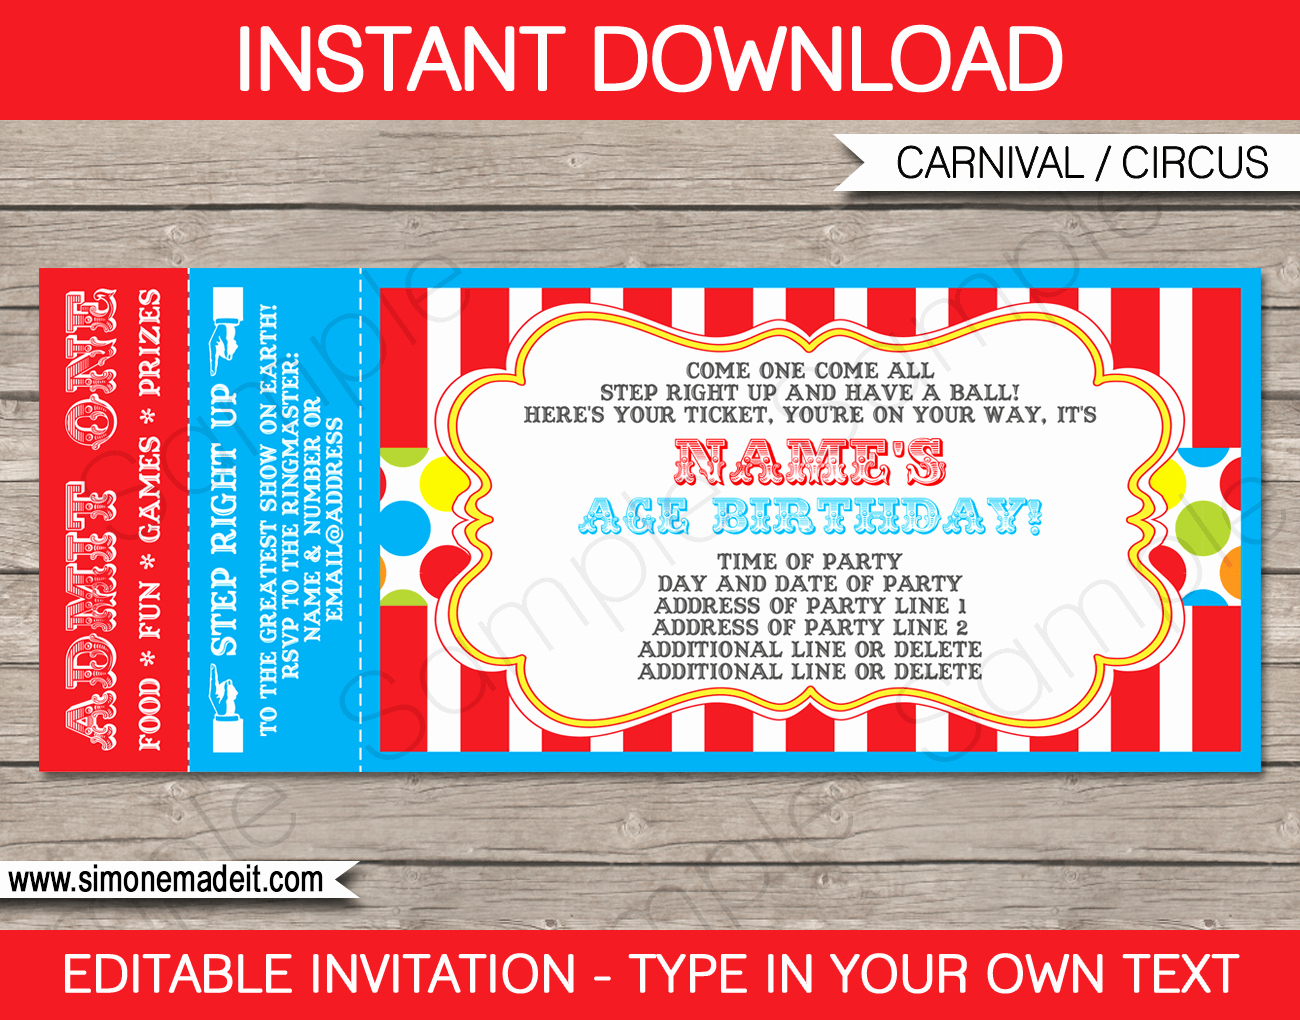 Carnival Invitation Template Free Lovely Carnival Ticket Invitation Template